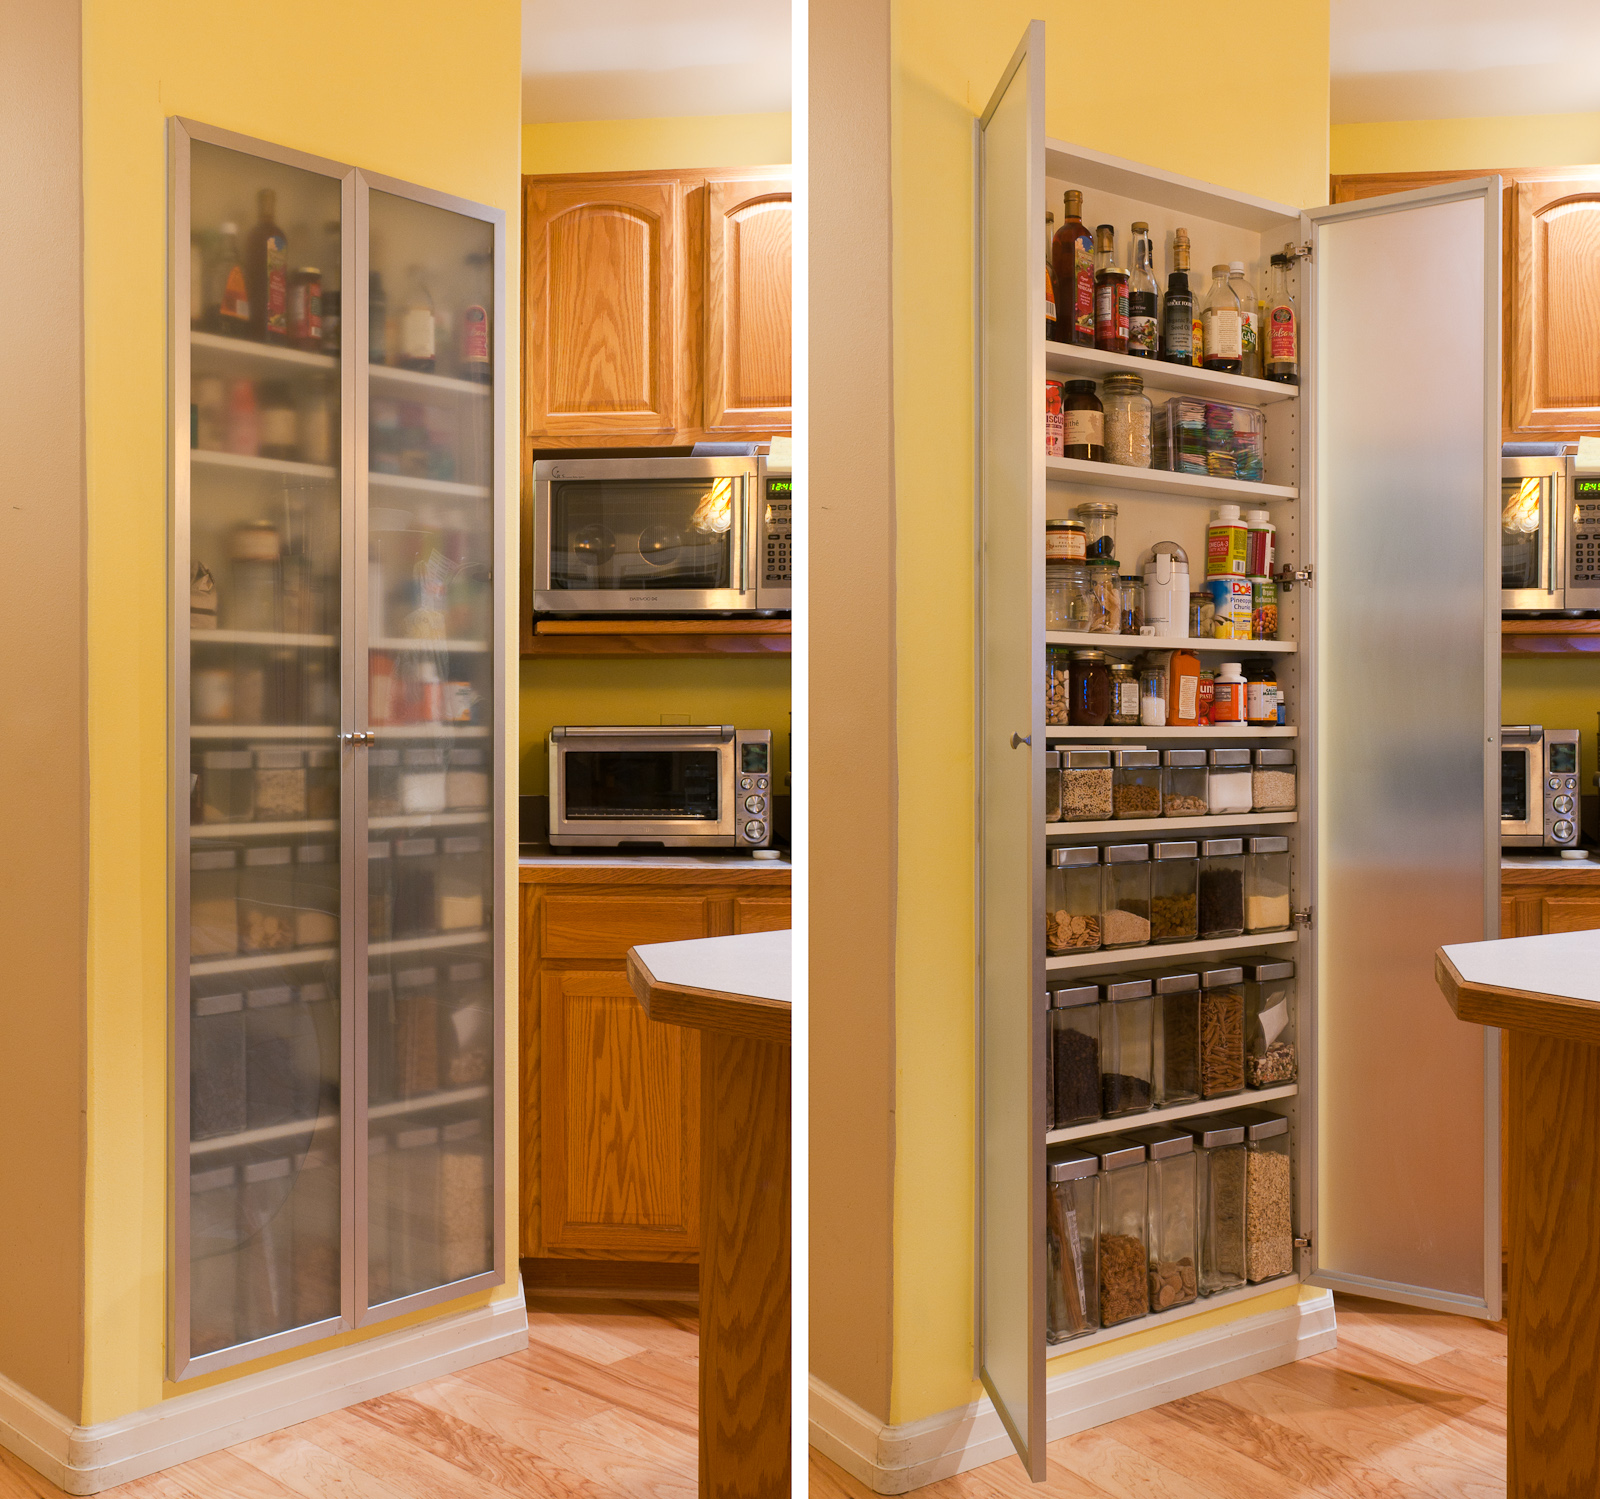 kitchen cabinets pantry ideas photo - 10